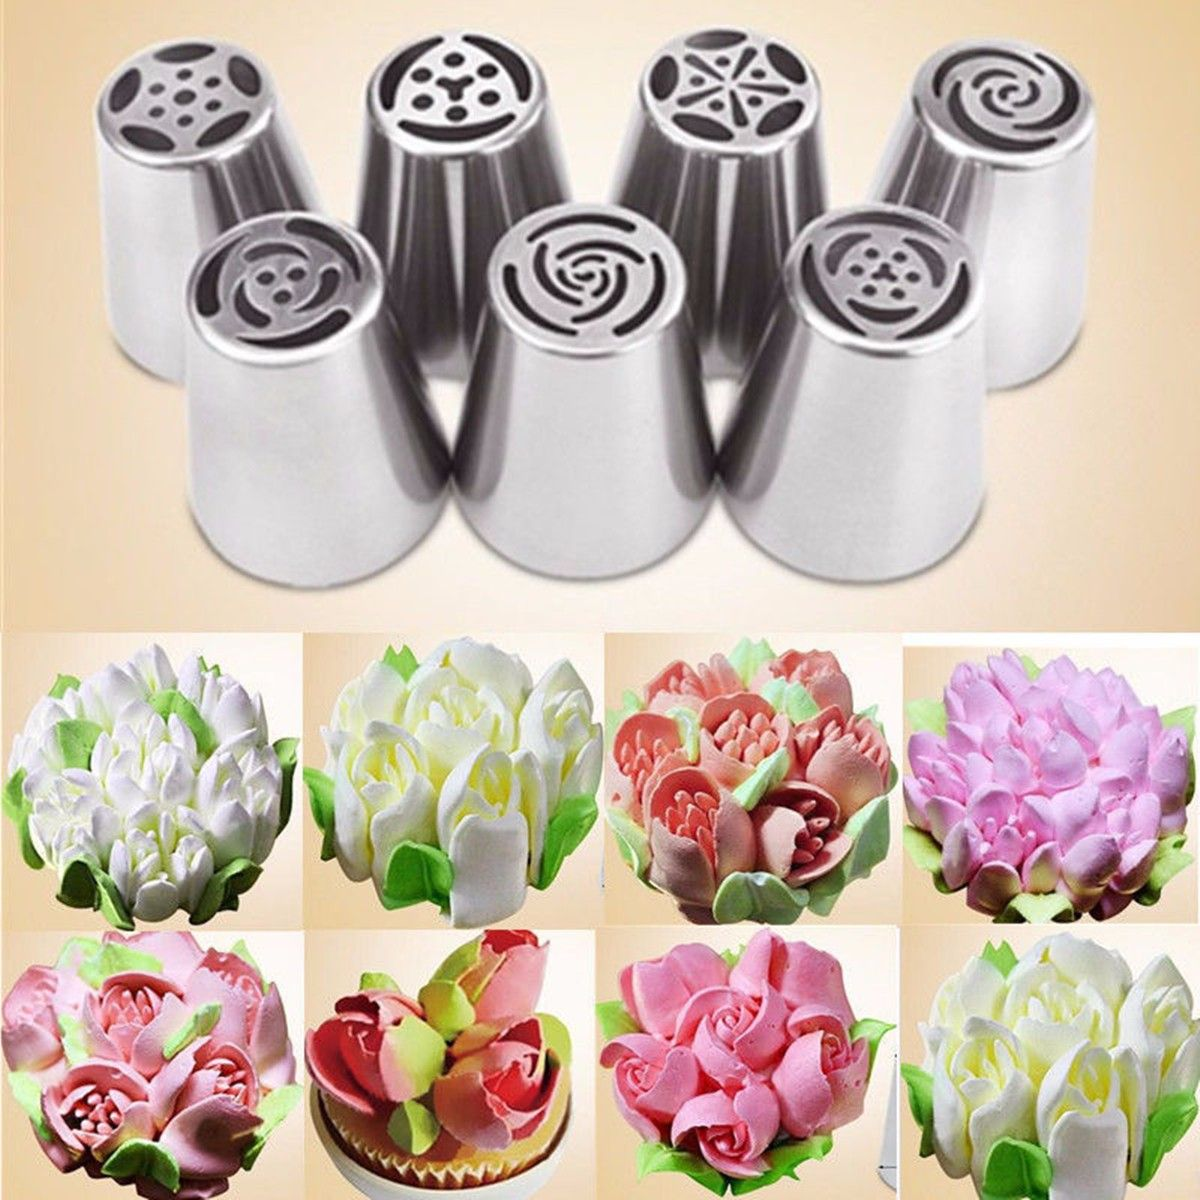 7pcs Russian Icing Piping Nozzles Tips Cake Decorating Sugarcraft Pastry Tool Walmart Creative Cake Decorating Cake Decorating Supplies Easy Cake Decorating